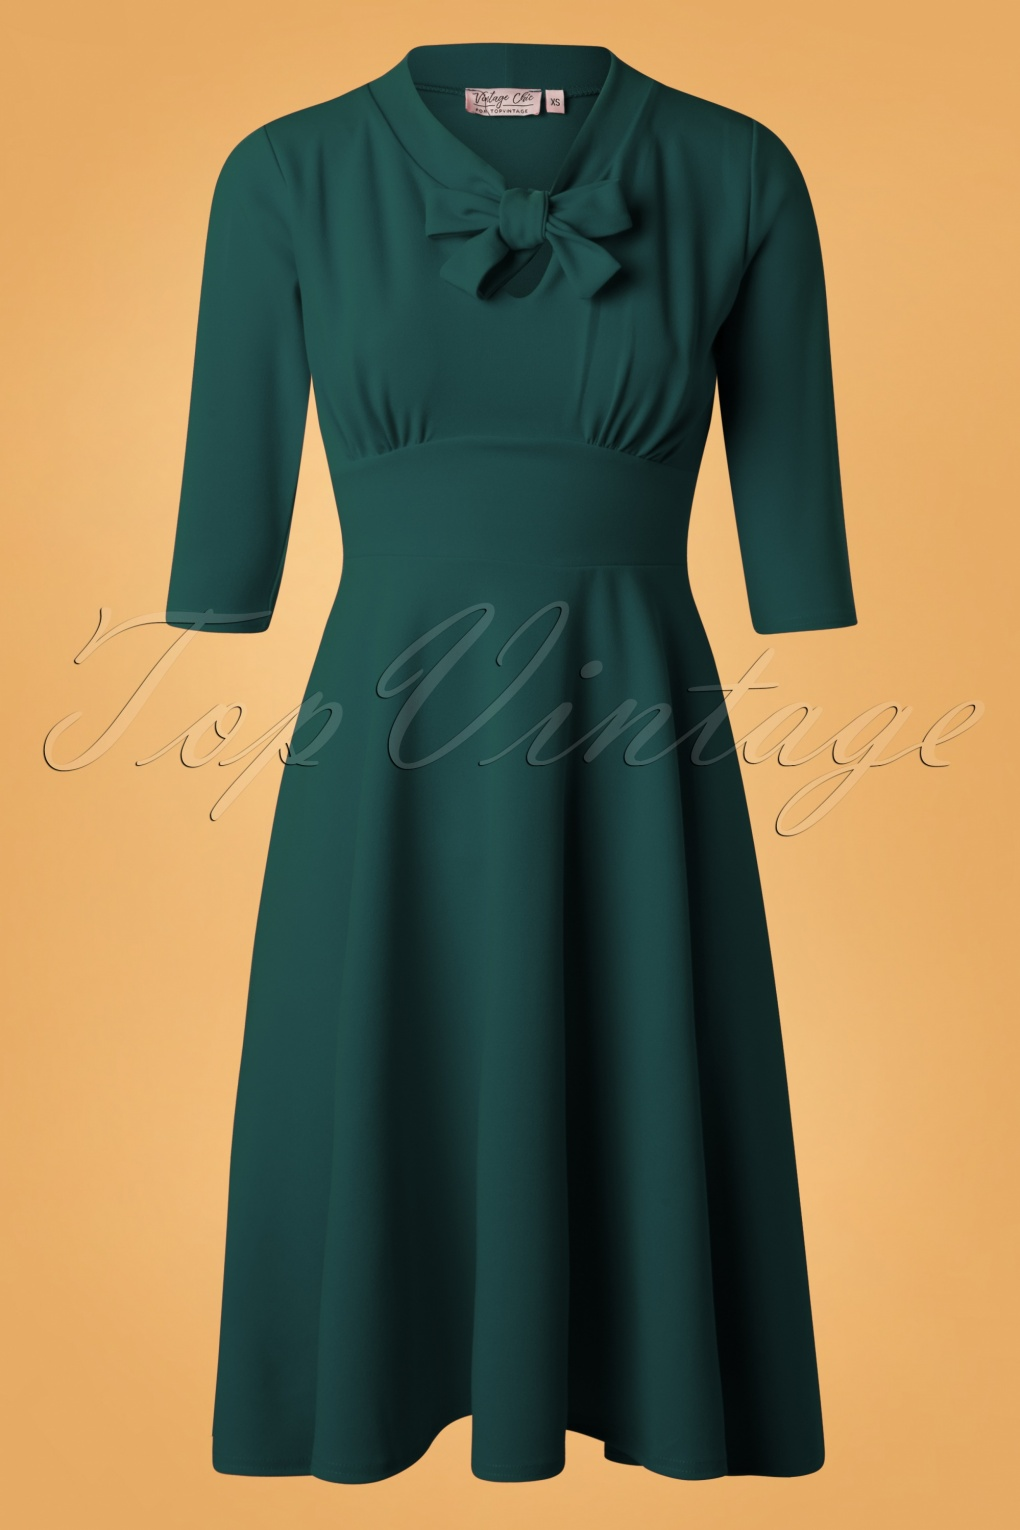 Vintage Christmas Dress | Party Dresses | Night Out Outfits 50s Geraldine Swing Dress in Petrol £52.49 AT vintagedancer.com